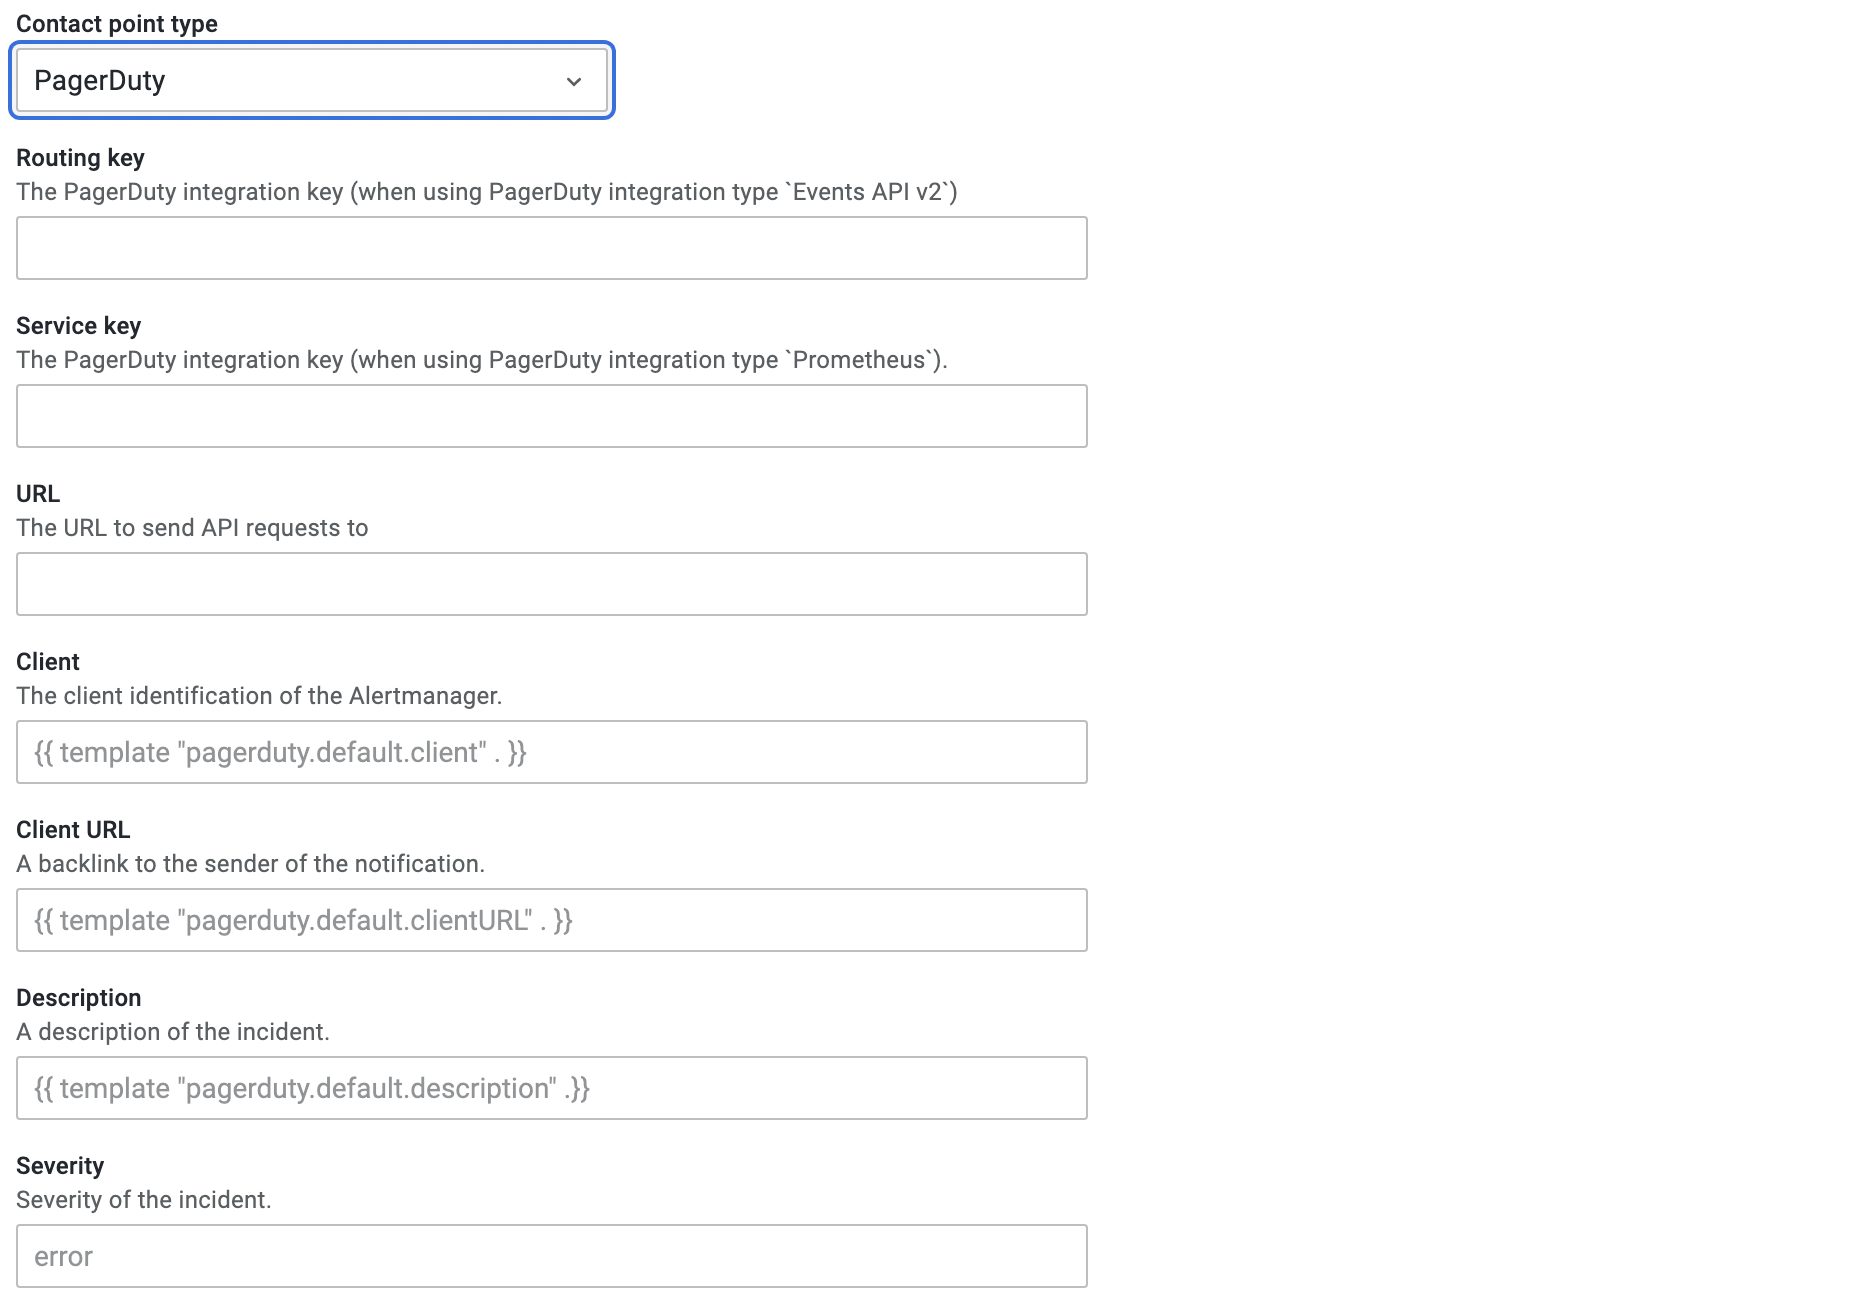 pagerduty config options